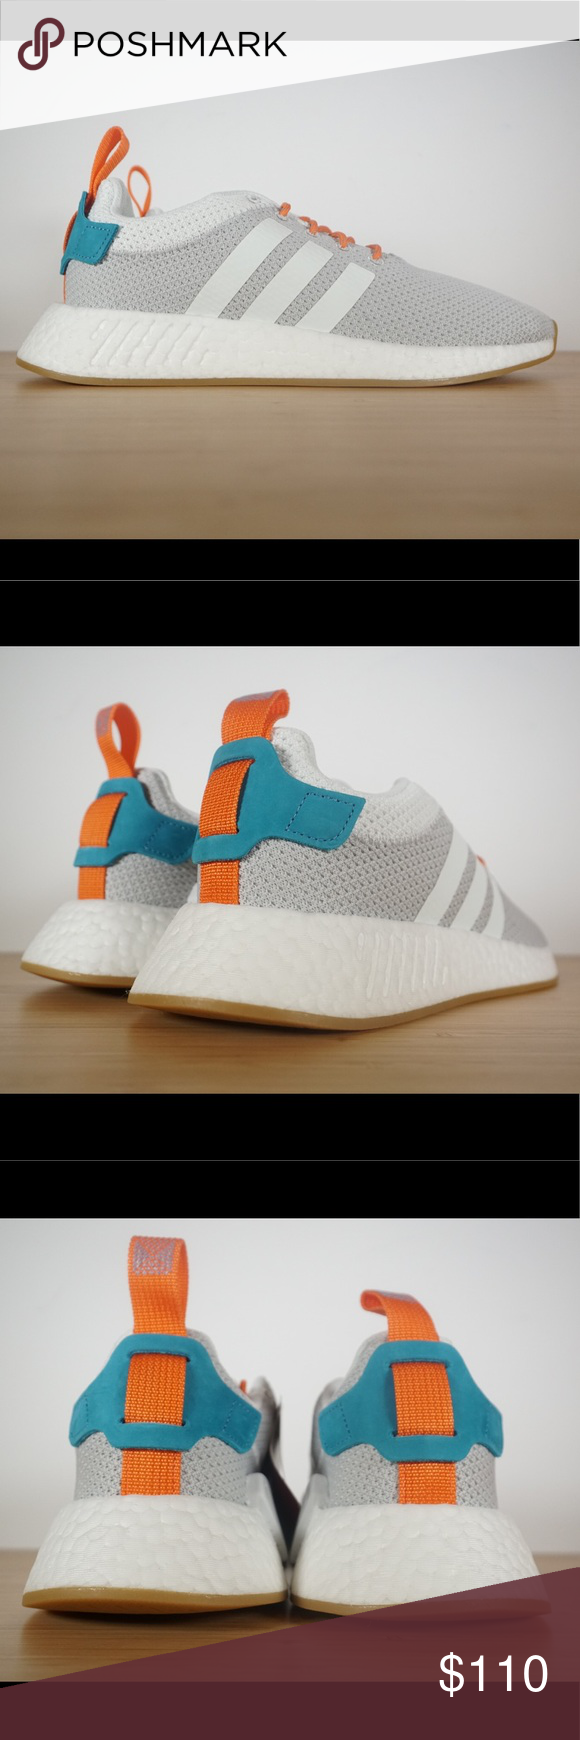 be841c7bf6f2e Adidas Nmd R2 Summer Crystal White Gum CQ3080 Brand New with Box ...